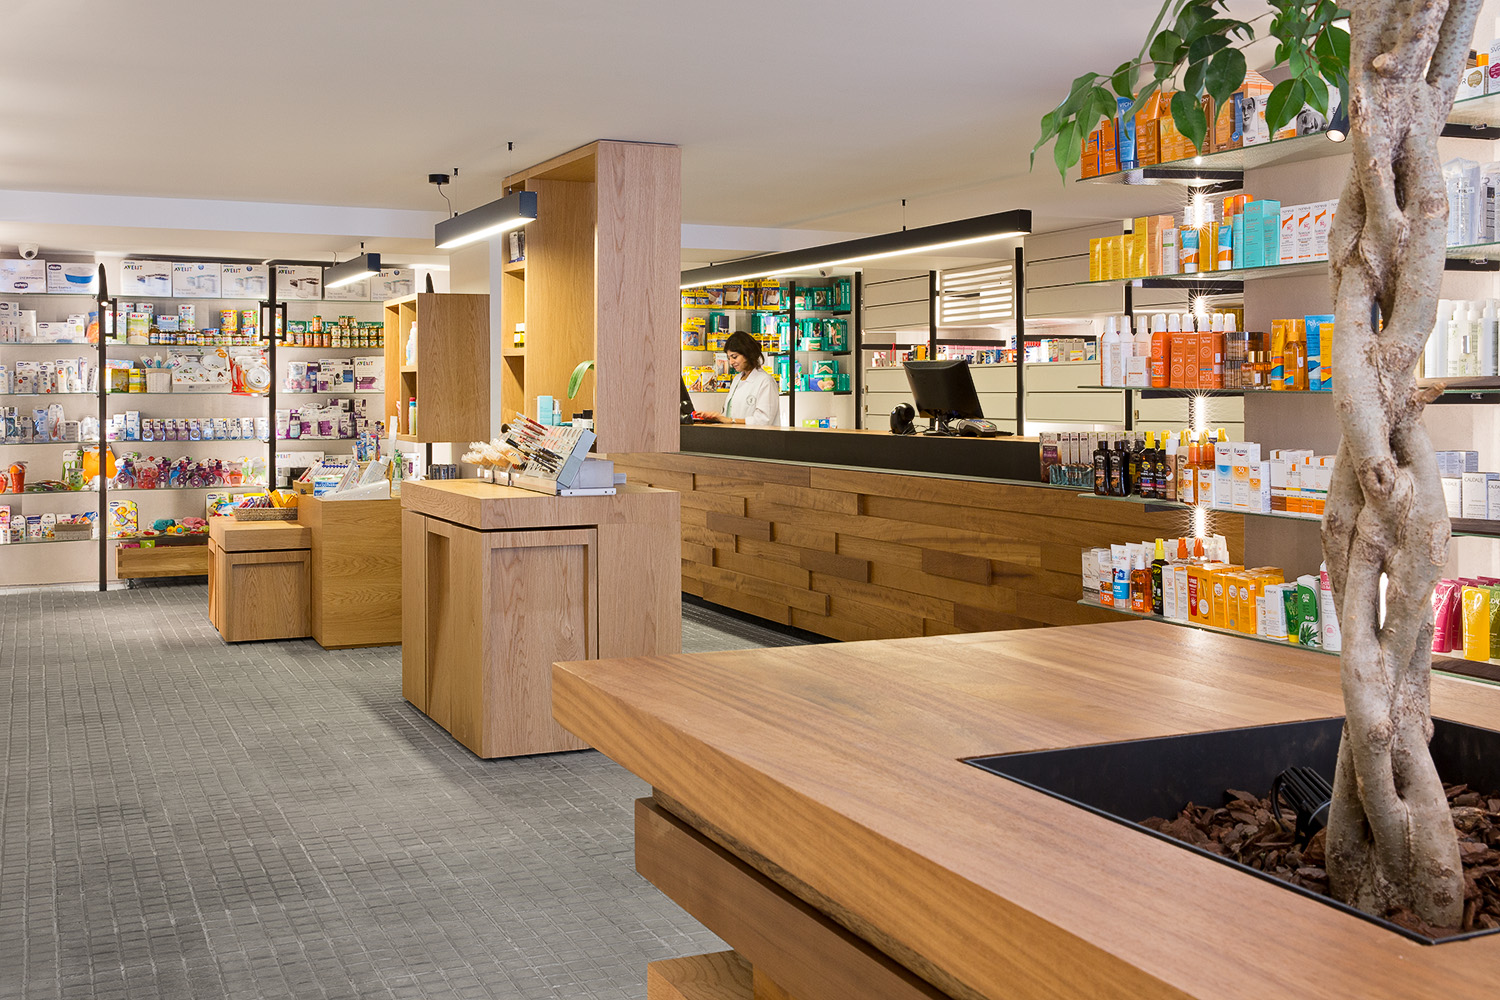 Pharmacie du Quartier - Karim Nader Studio and Blankpage Architects